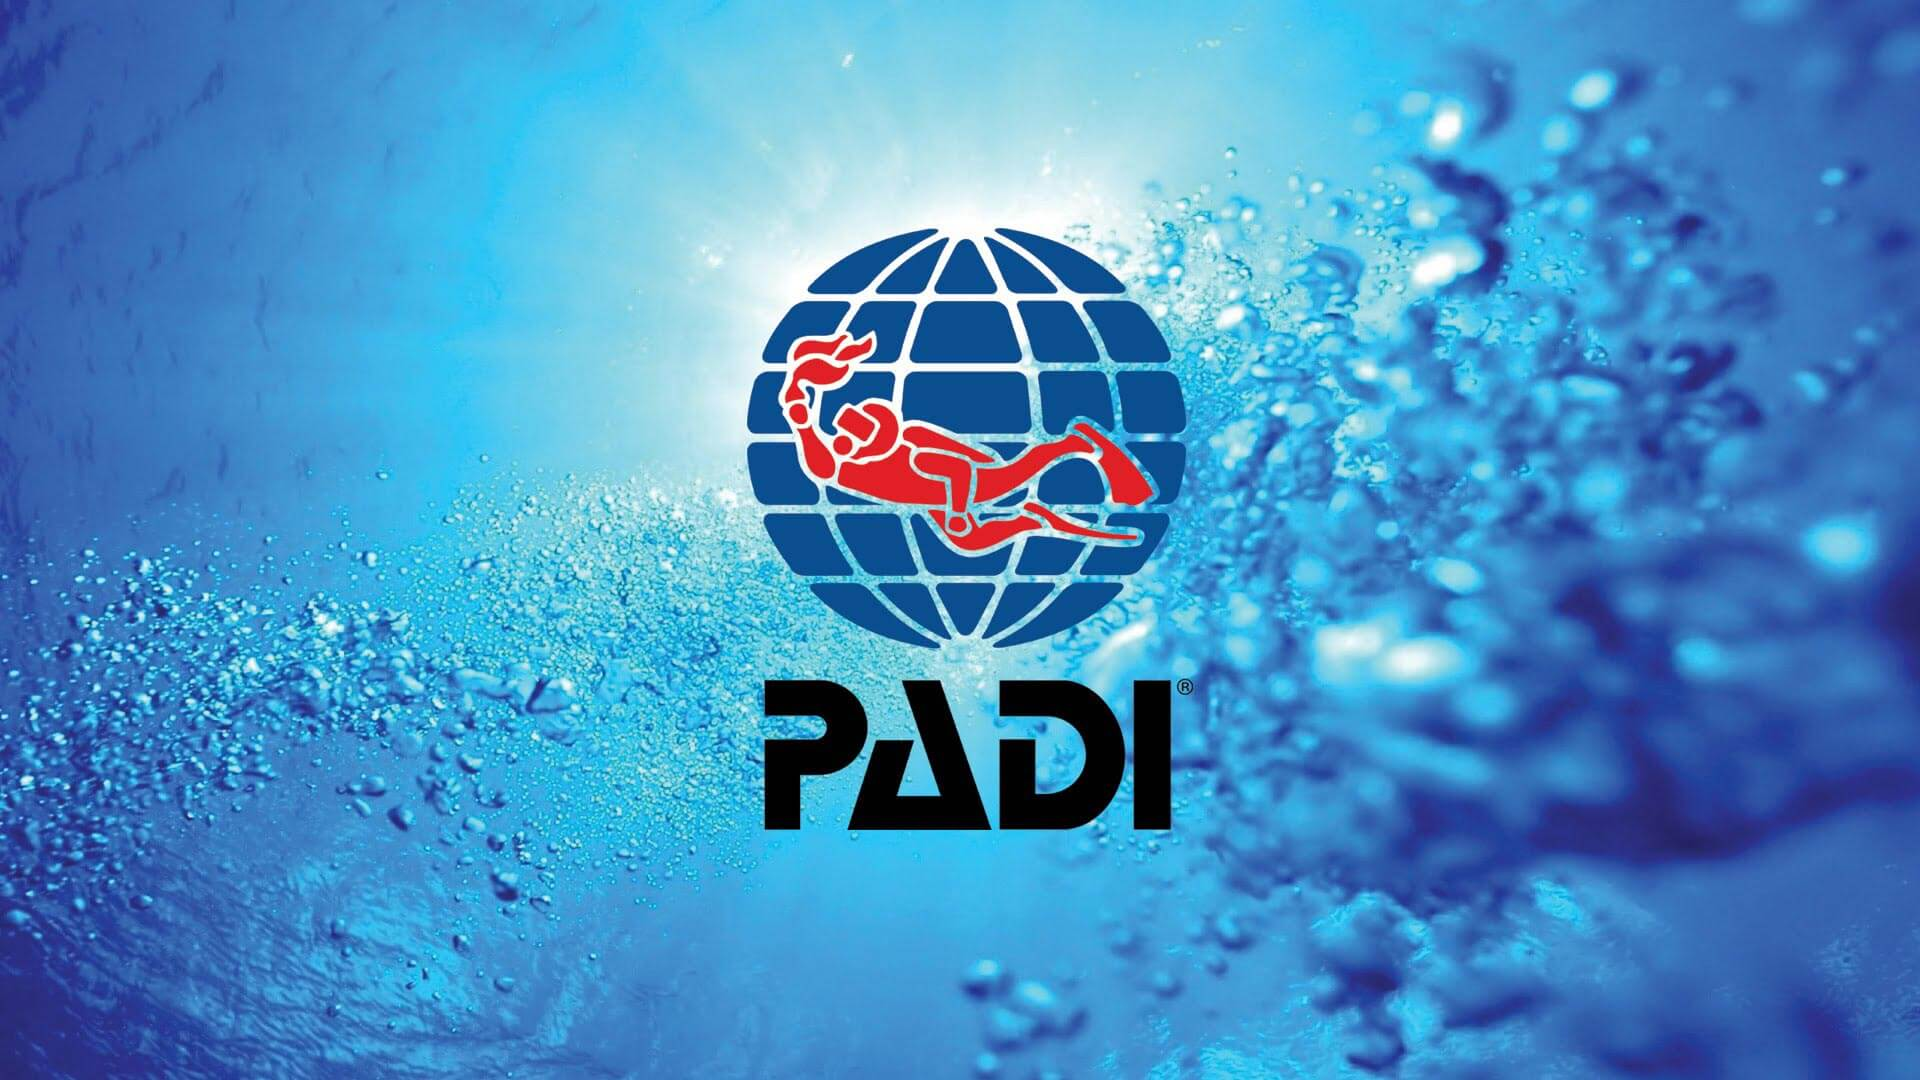 Simon Creed – PADI Master Instructor